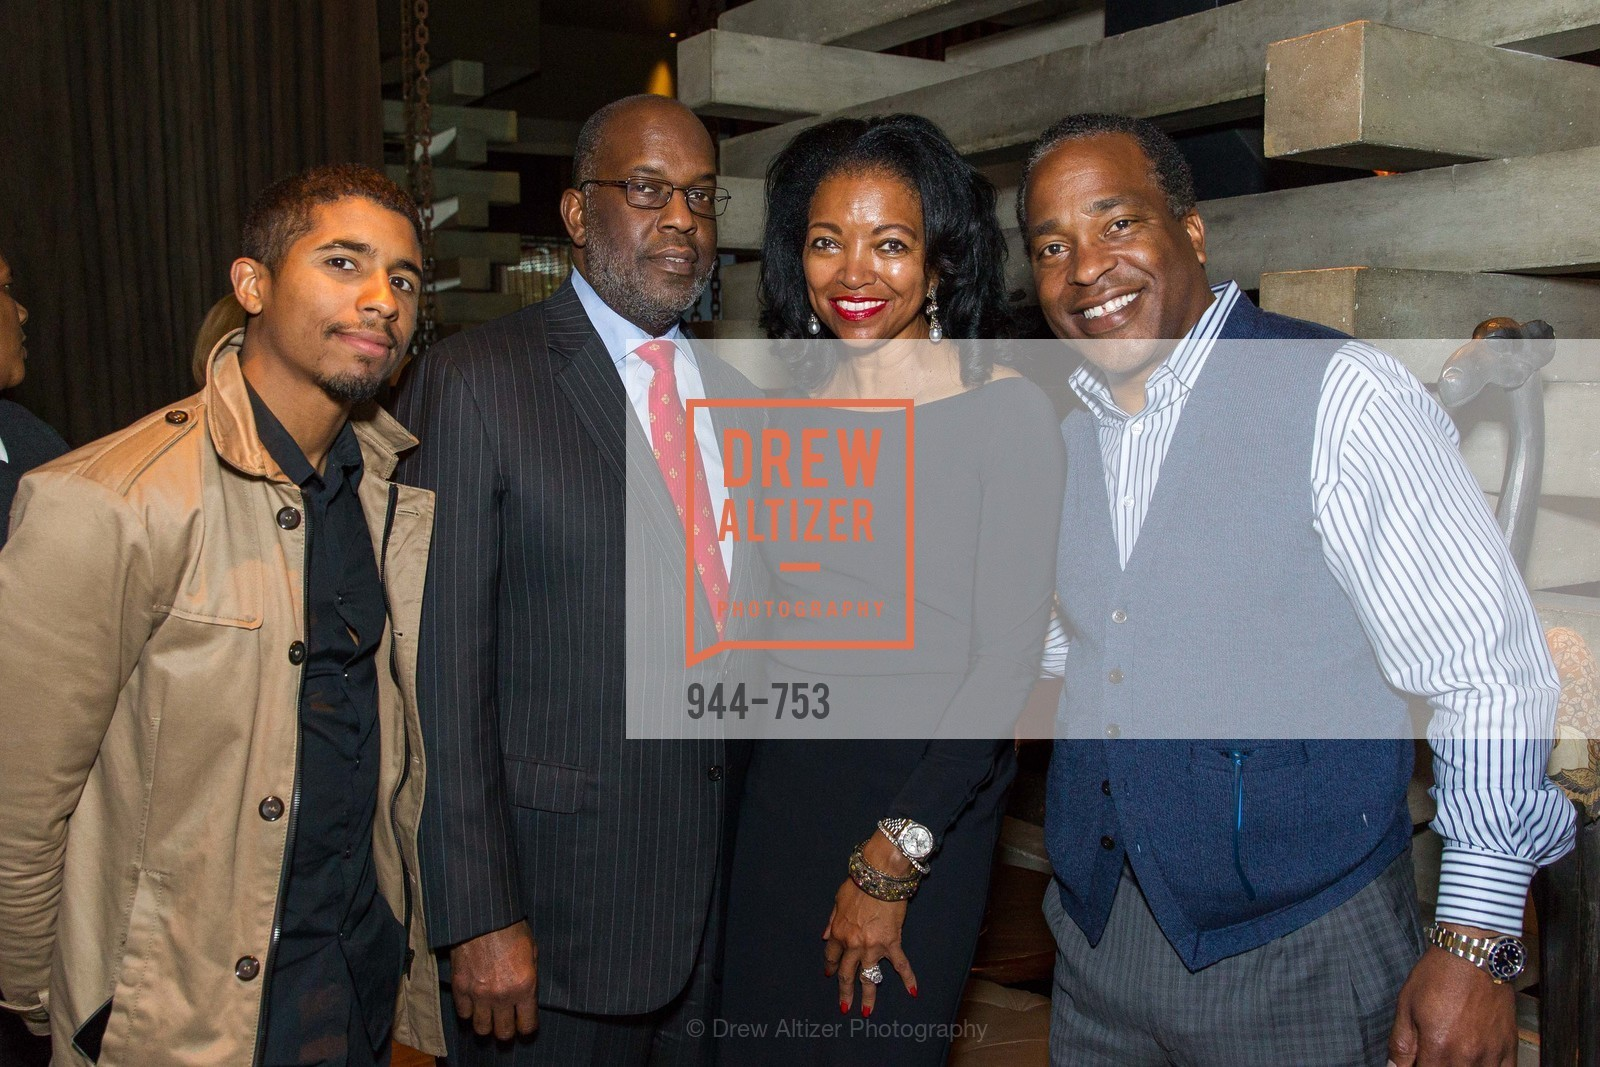 Chris Lyons, Bernard Tyson, Denise Bradley Tyson, INSPIRED LUXE Launch Party Hosted by Denise Bradley Tyson, US, May 28th, 2015,Drew Altizer, Drew Altizer Photography, full-service agency, private events, San Francisco photographer, photographer california